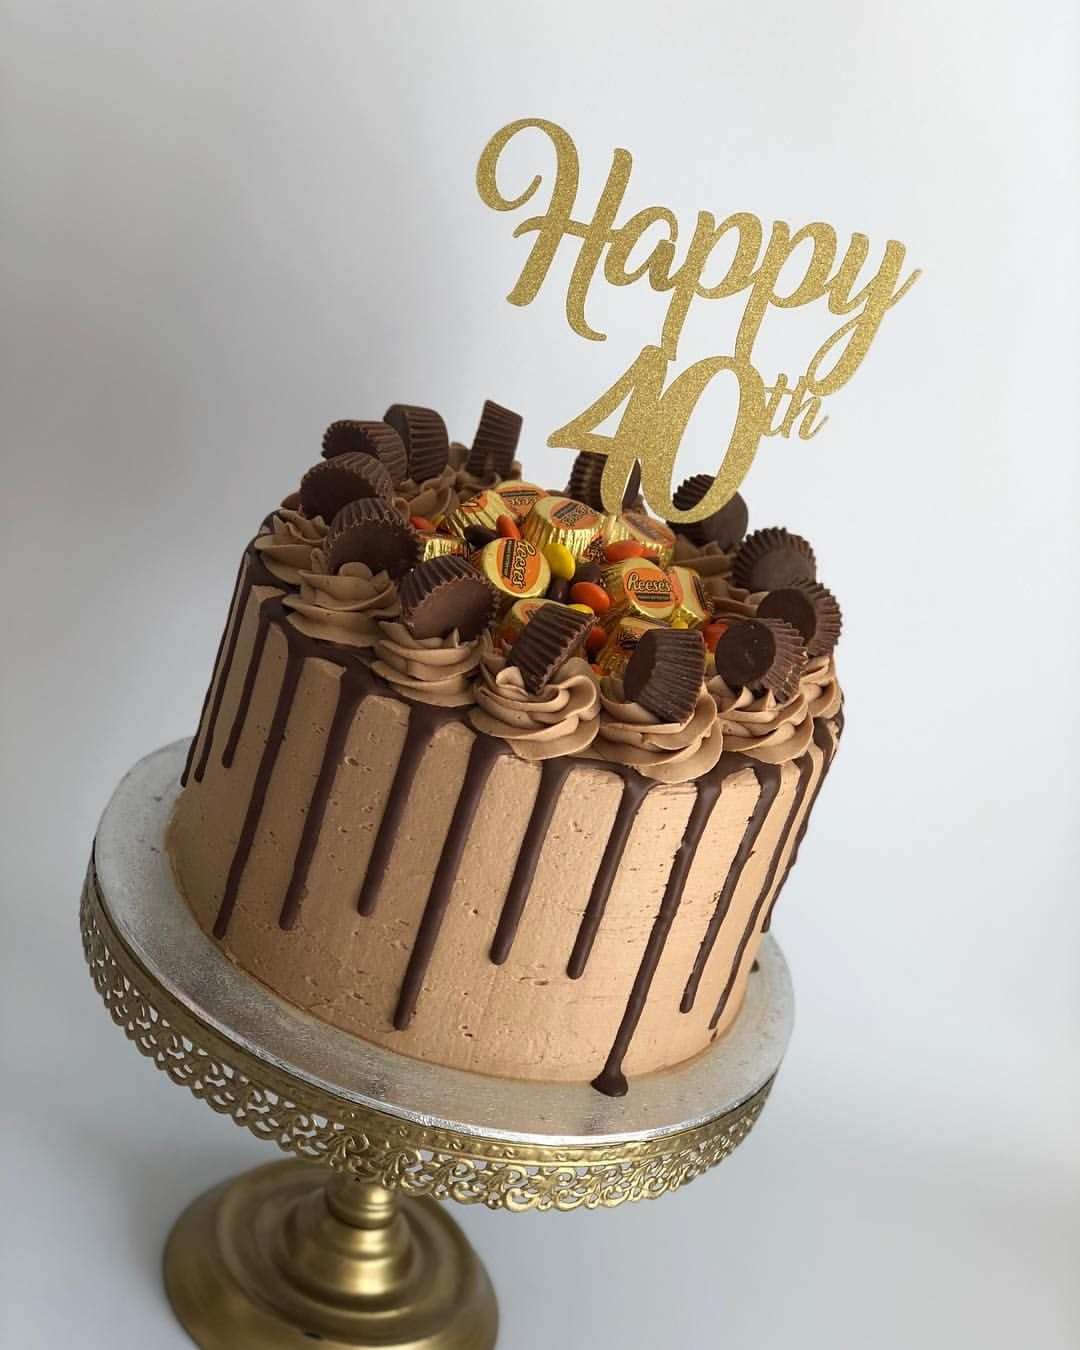 8 Inch Reeses Peanut Butter Chocolate Drip Cake Made For The